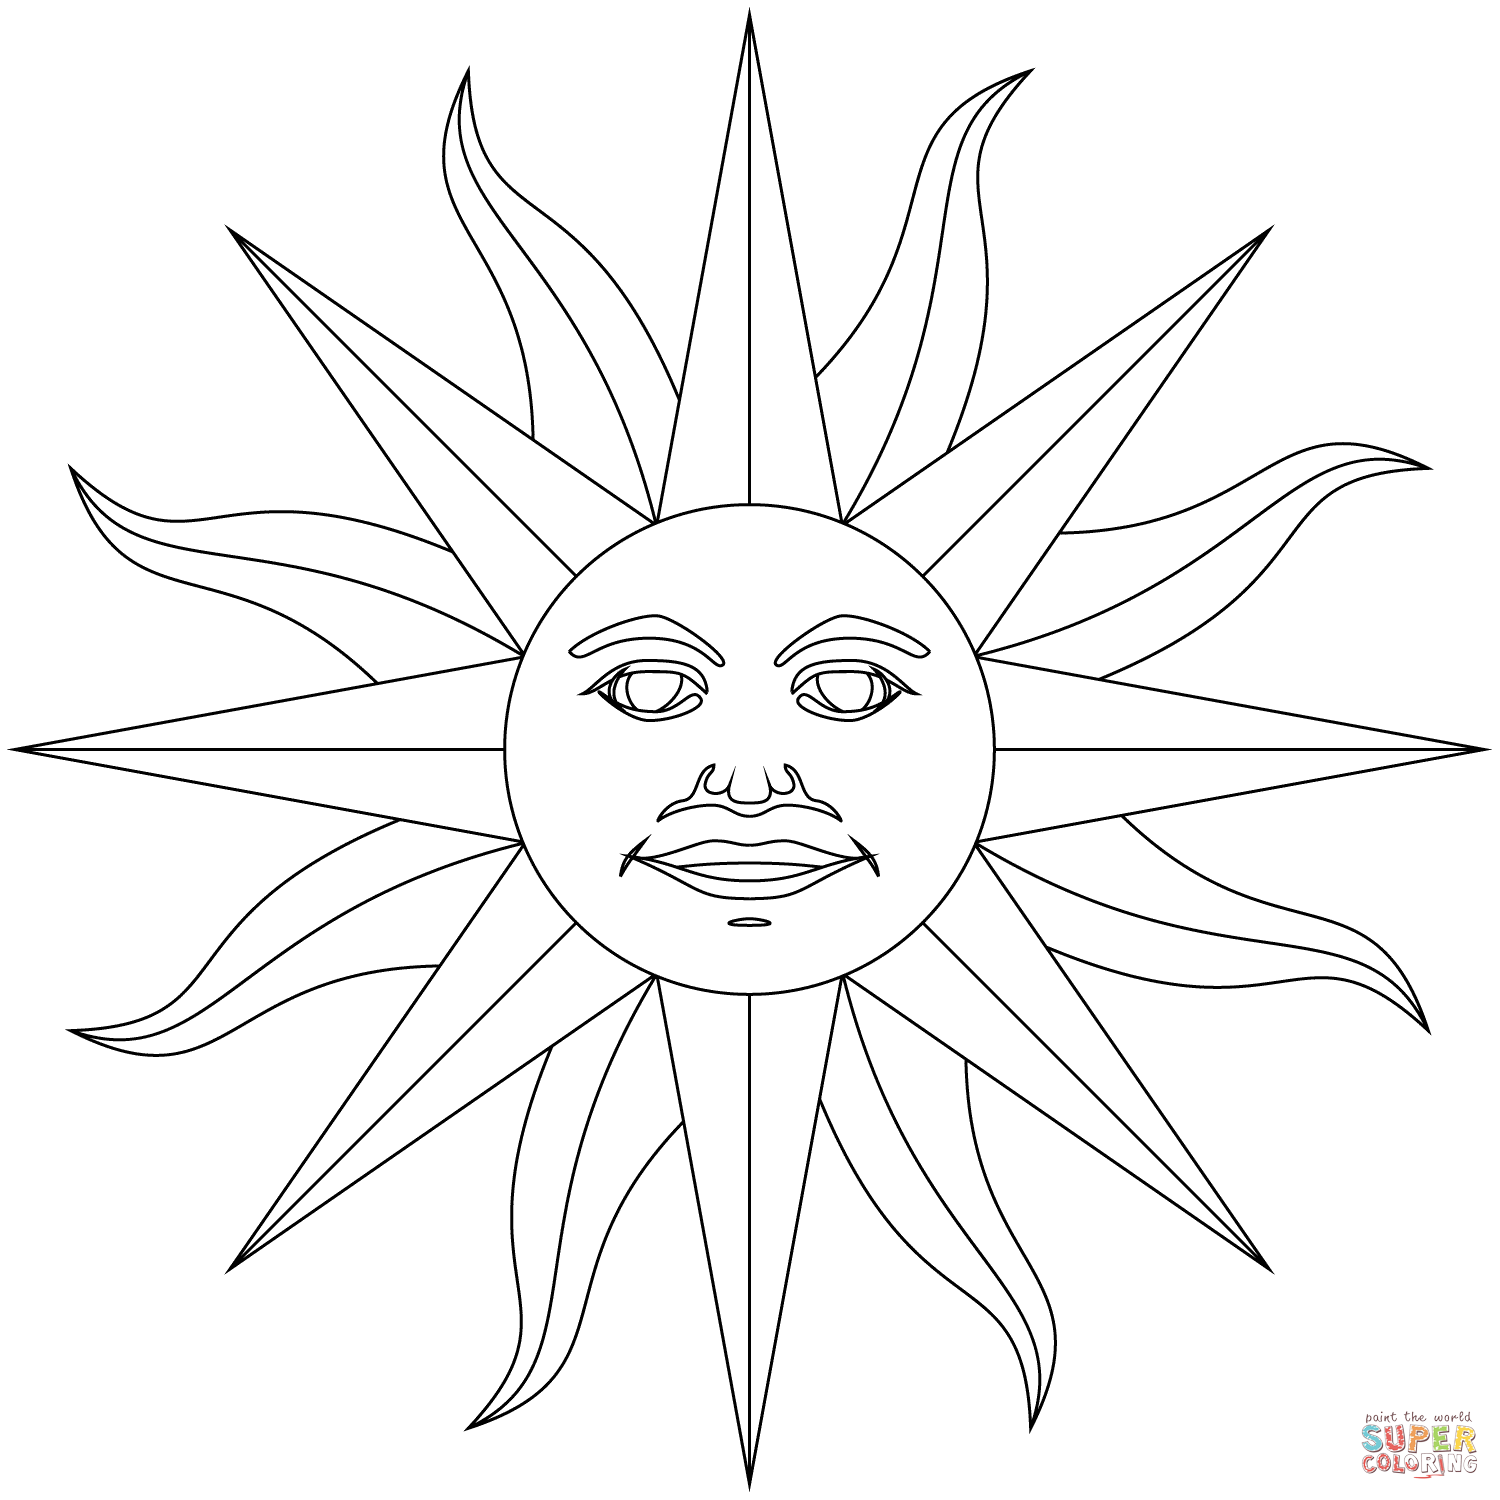 inca coloring pages inca coloring pages inca coloring pages